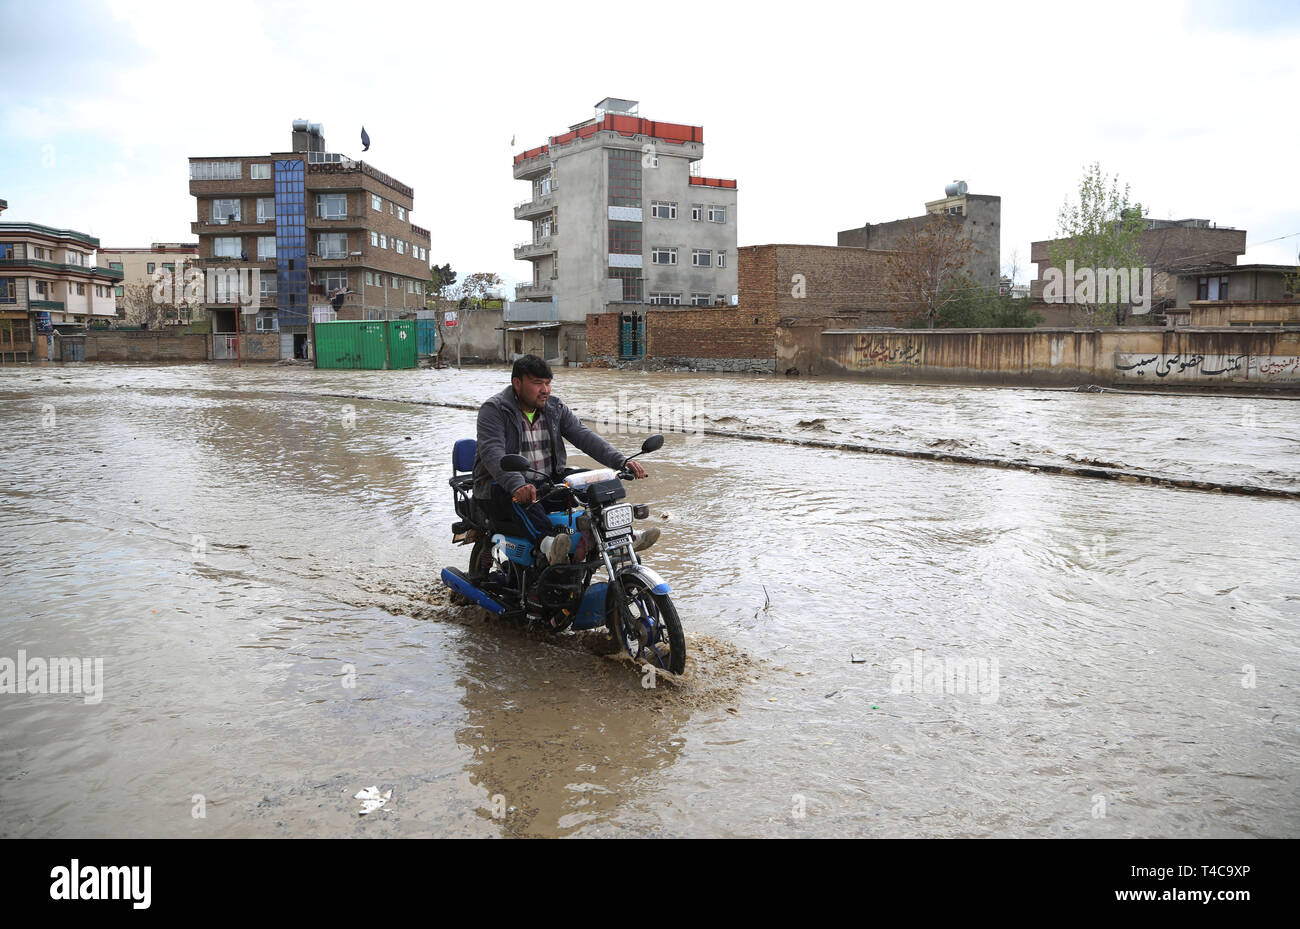 Kabul, Afghanistan. 16th Apr, 2019. An Afghan man rides his motorcycle in flood in Kabul, capital of Afghanistan, April 16, 2019. One person has been reported dead after the Kabul river flooded in the country's capital, where the government issued a warning asking people to leave flood-prone areas and houses located at the two banks of the river, as the rising overflow was uncontrollable. Credit: Rahmat Alizadah/Xinhua/Alamy Live News - Stock Image